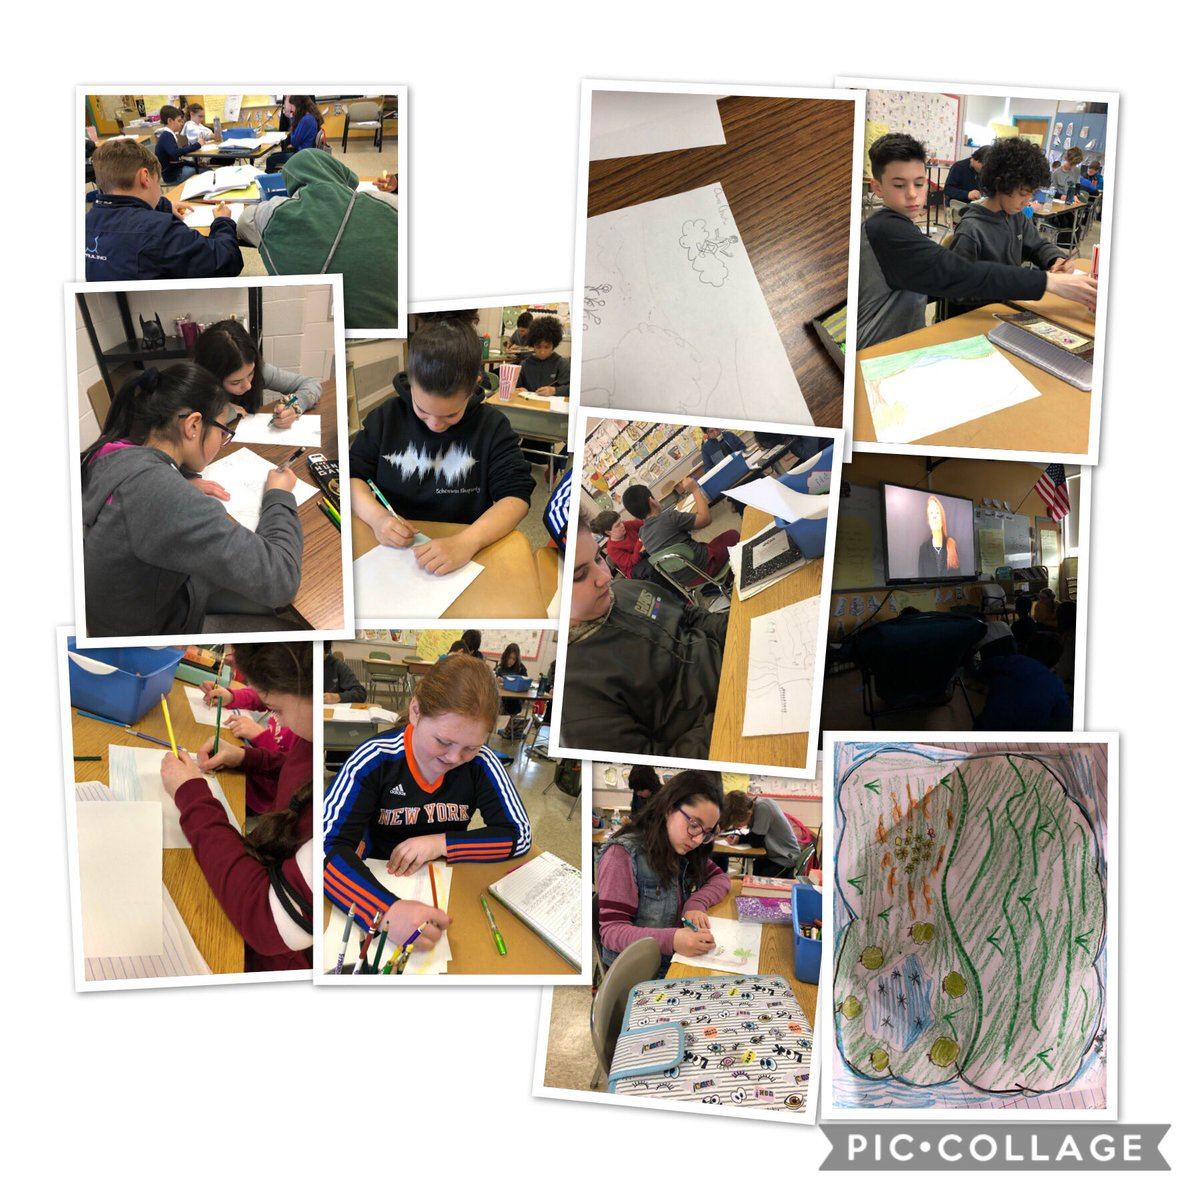 #readingheroes analyze a text for imagery. They listen closely to the words, then draw what they hear. Sensory and figurative language are especially important! #smspride #smsreads #smsreadspoetry @DrChrisLongo @SMS_CT